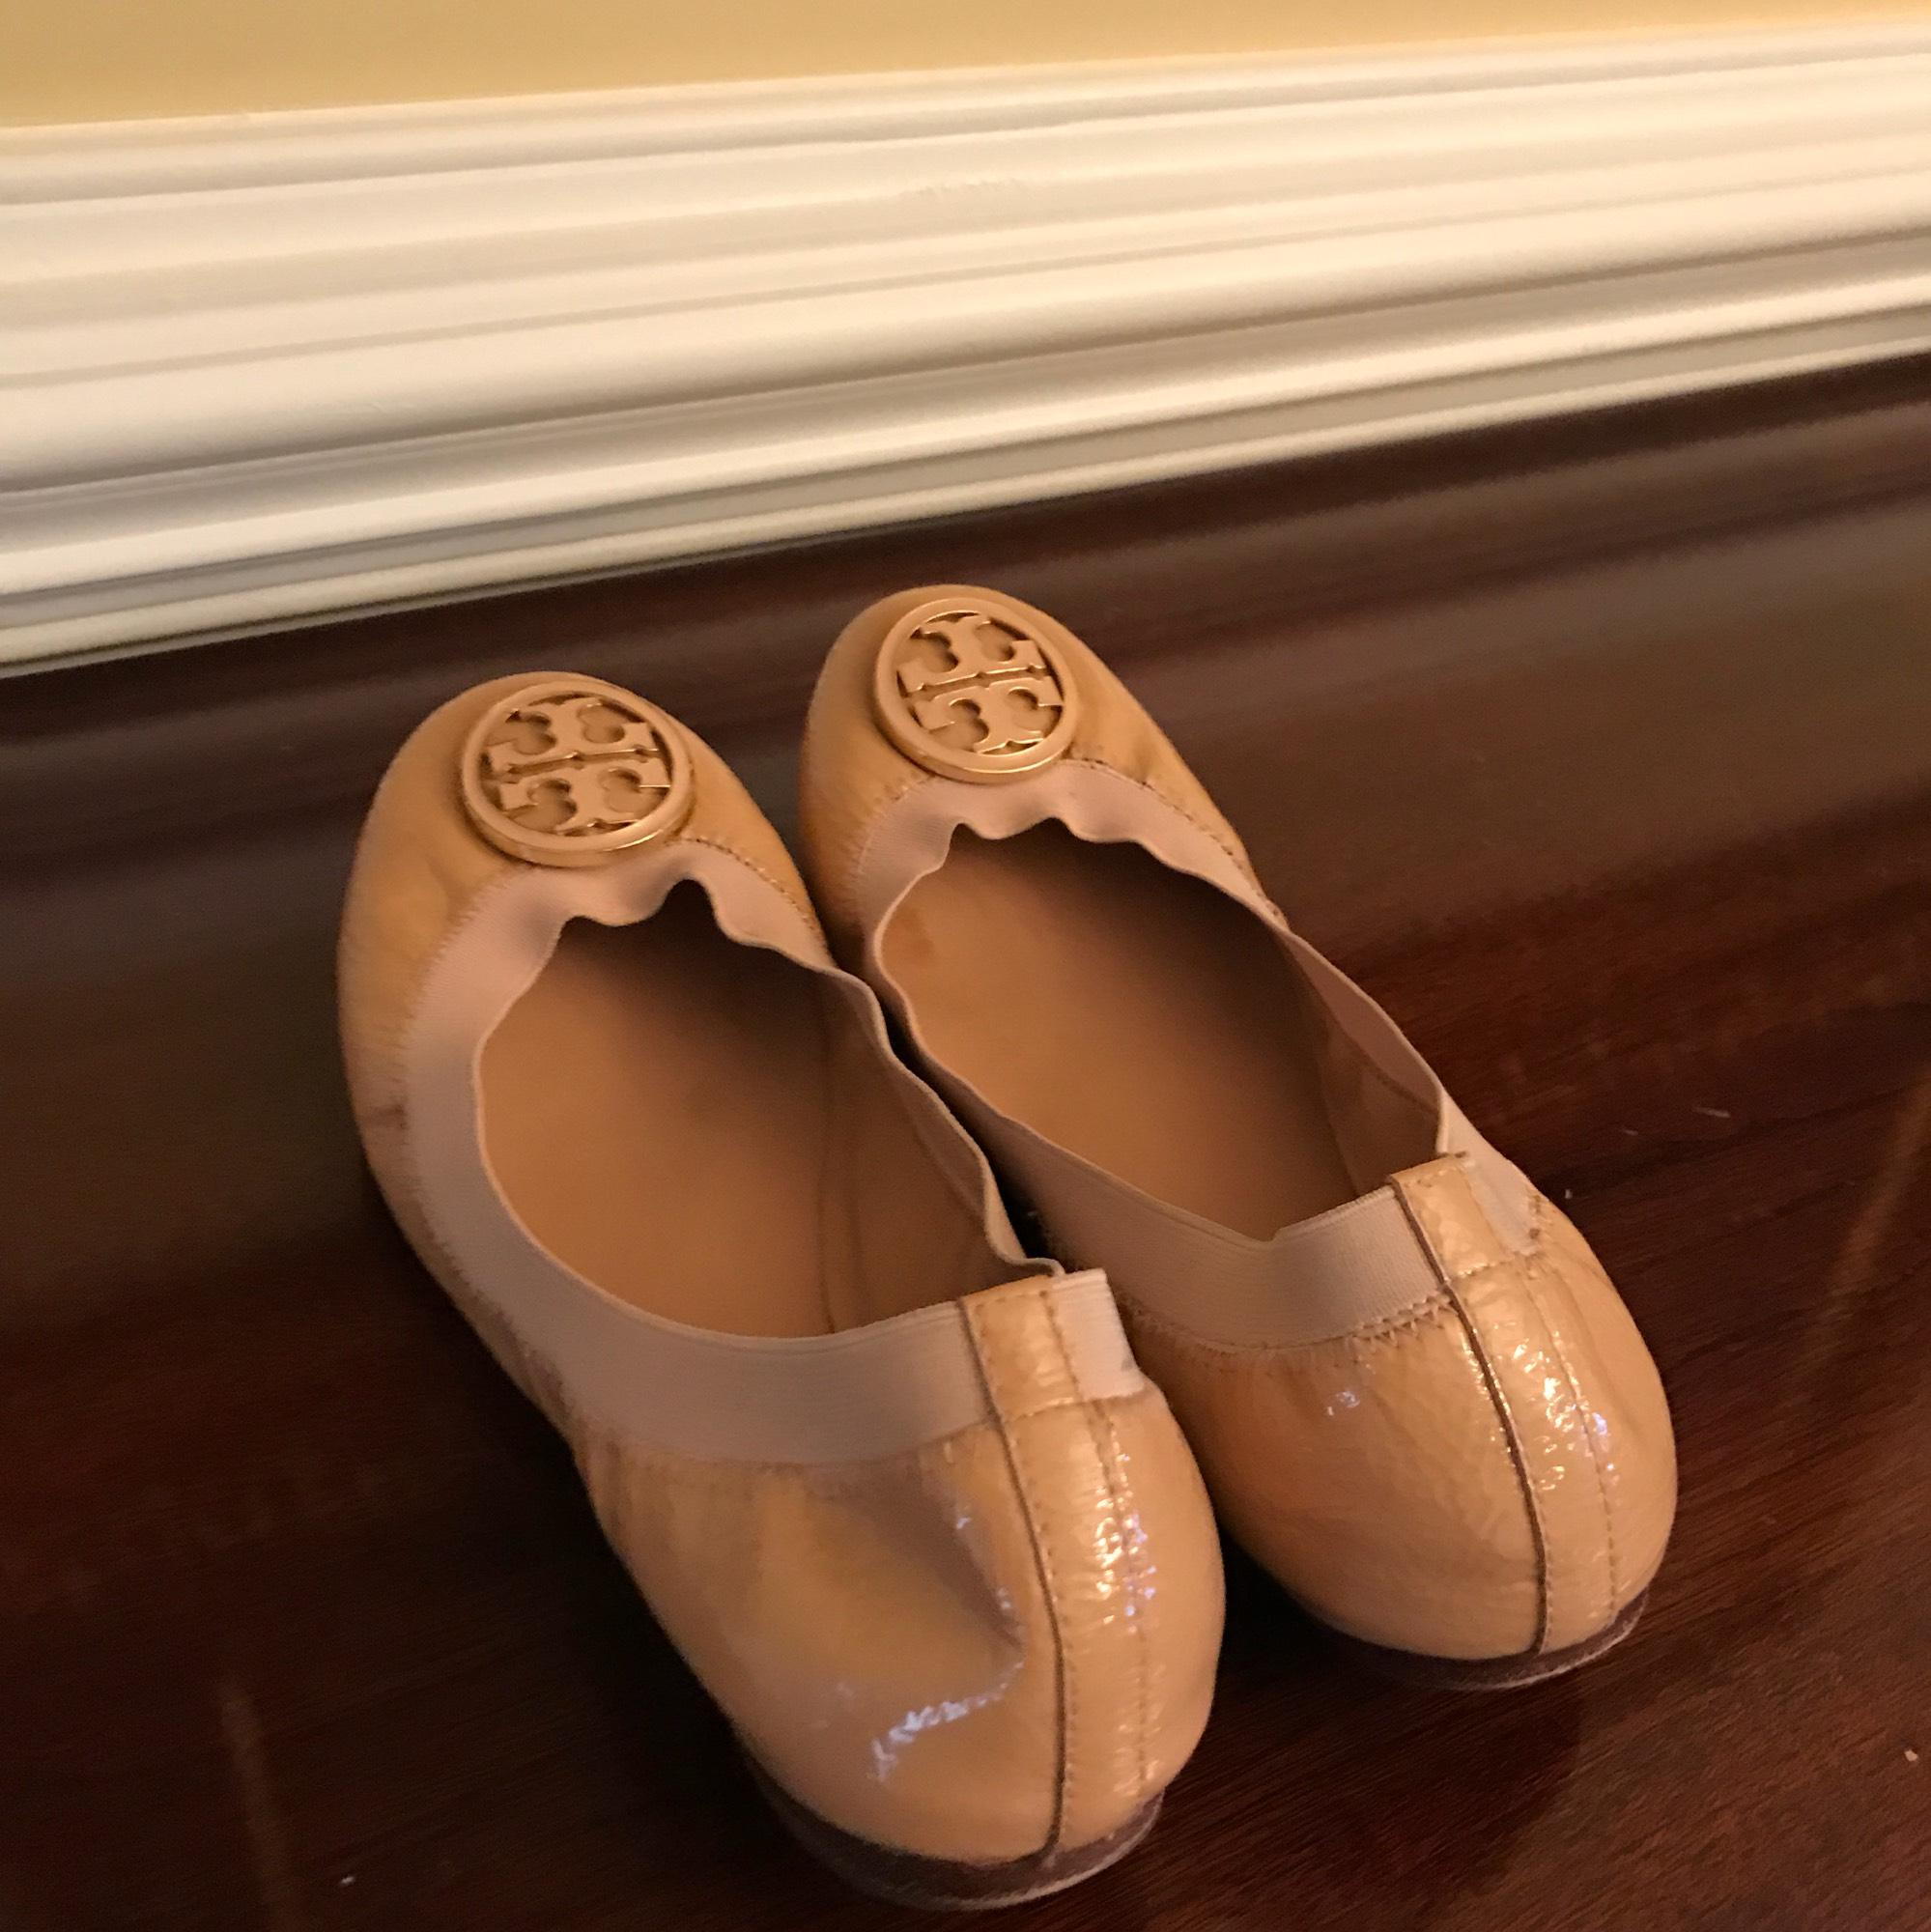 af31813bed5 Tory Tory Tory Burch Nude Ballet Flats Size US 7.5 cdaca0 - fitness ...